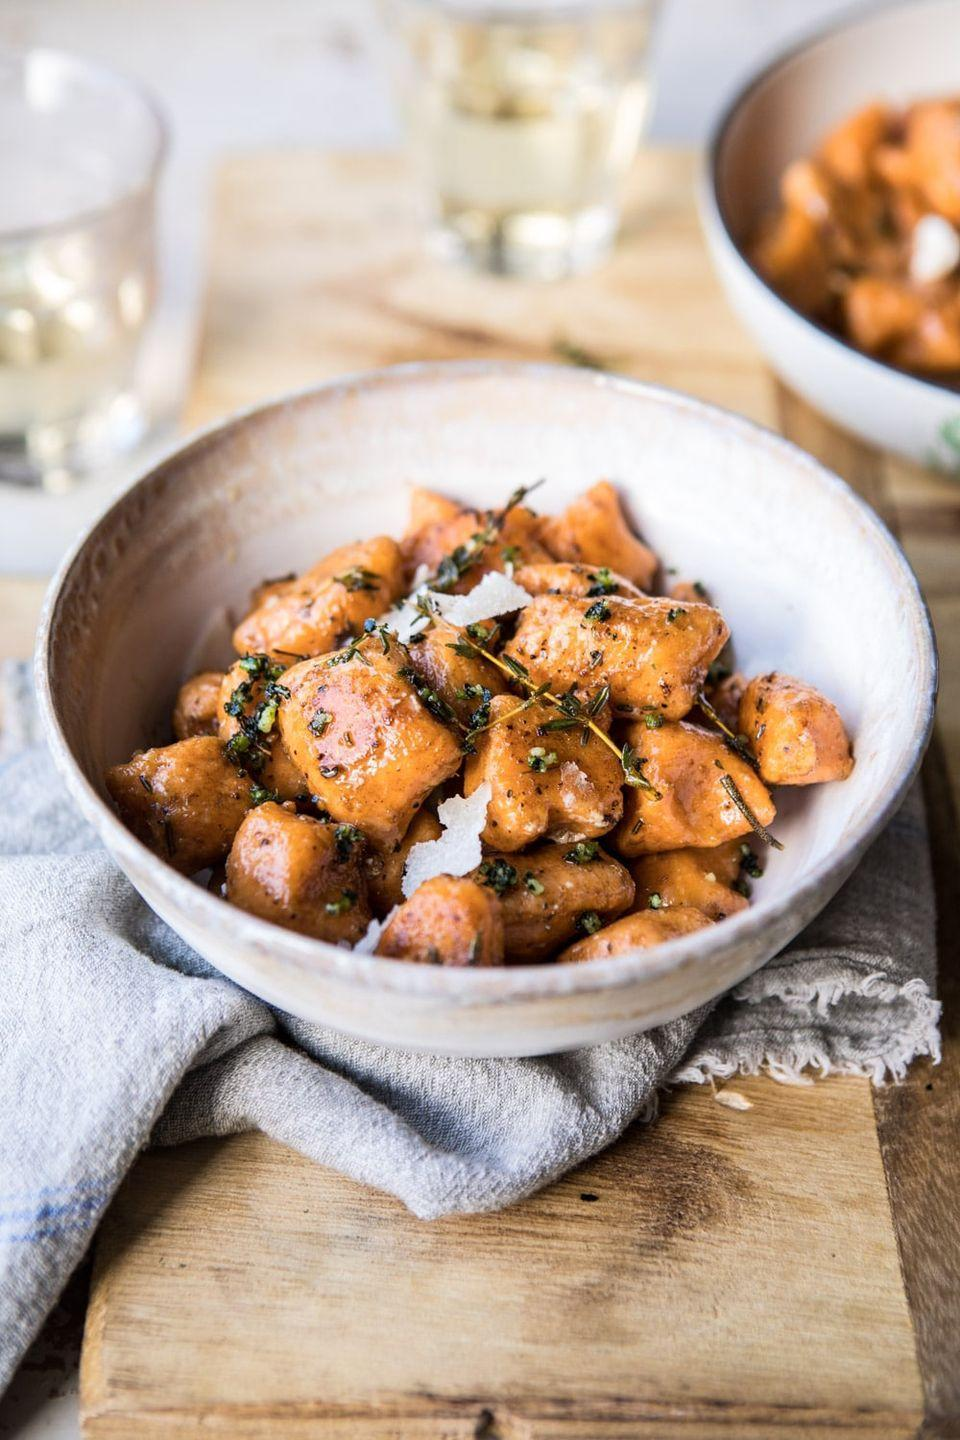 """<p>This four-ingredient recipe will become your favorite fall pasta dish.</p><p><strong>Get the recipe at <a href=""""https://www.halfbakedharvest.com/sweet-potato-gnocchi-with-herbed-white-wine-pan-sauce/"""" rel=""""nofollow noopener"""" target=""""_blank"""" data-ylk=""""slk:Half Baked Harvest"""" class=""""link rapid-noclick-resp"""">Half Baked Harvest</a>.</strong></p>"""